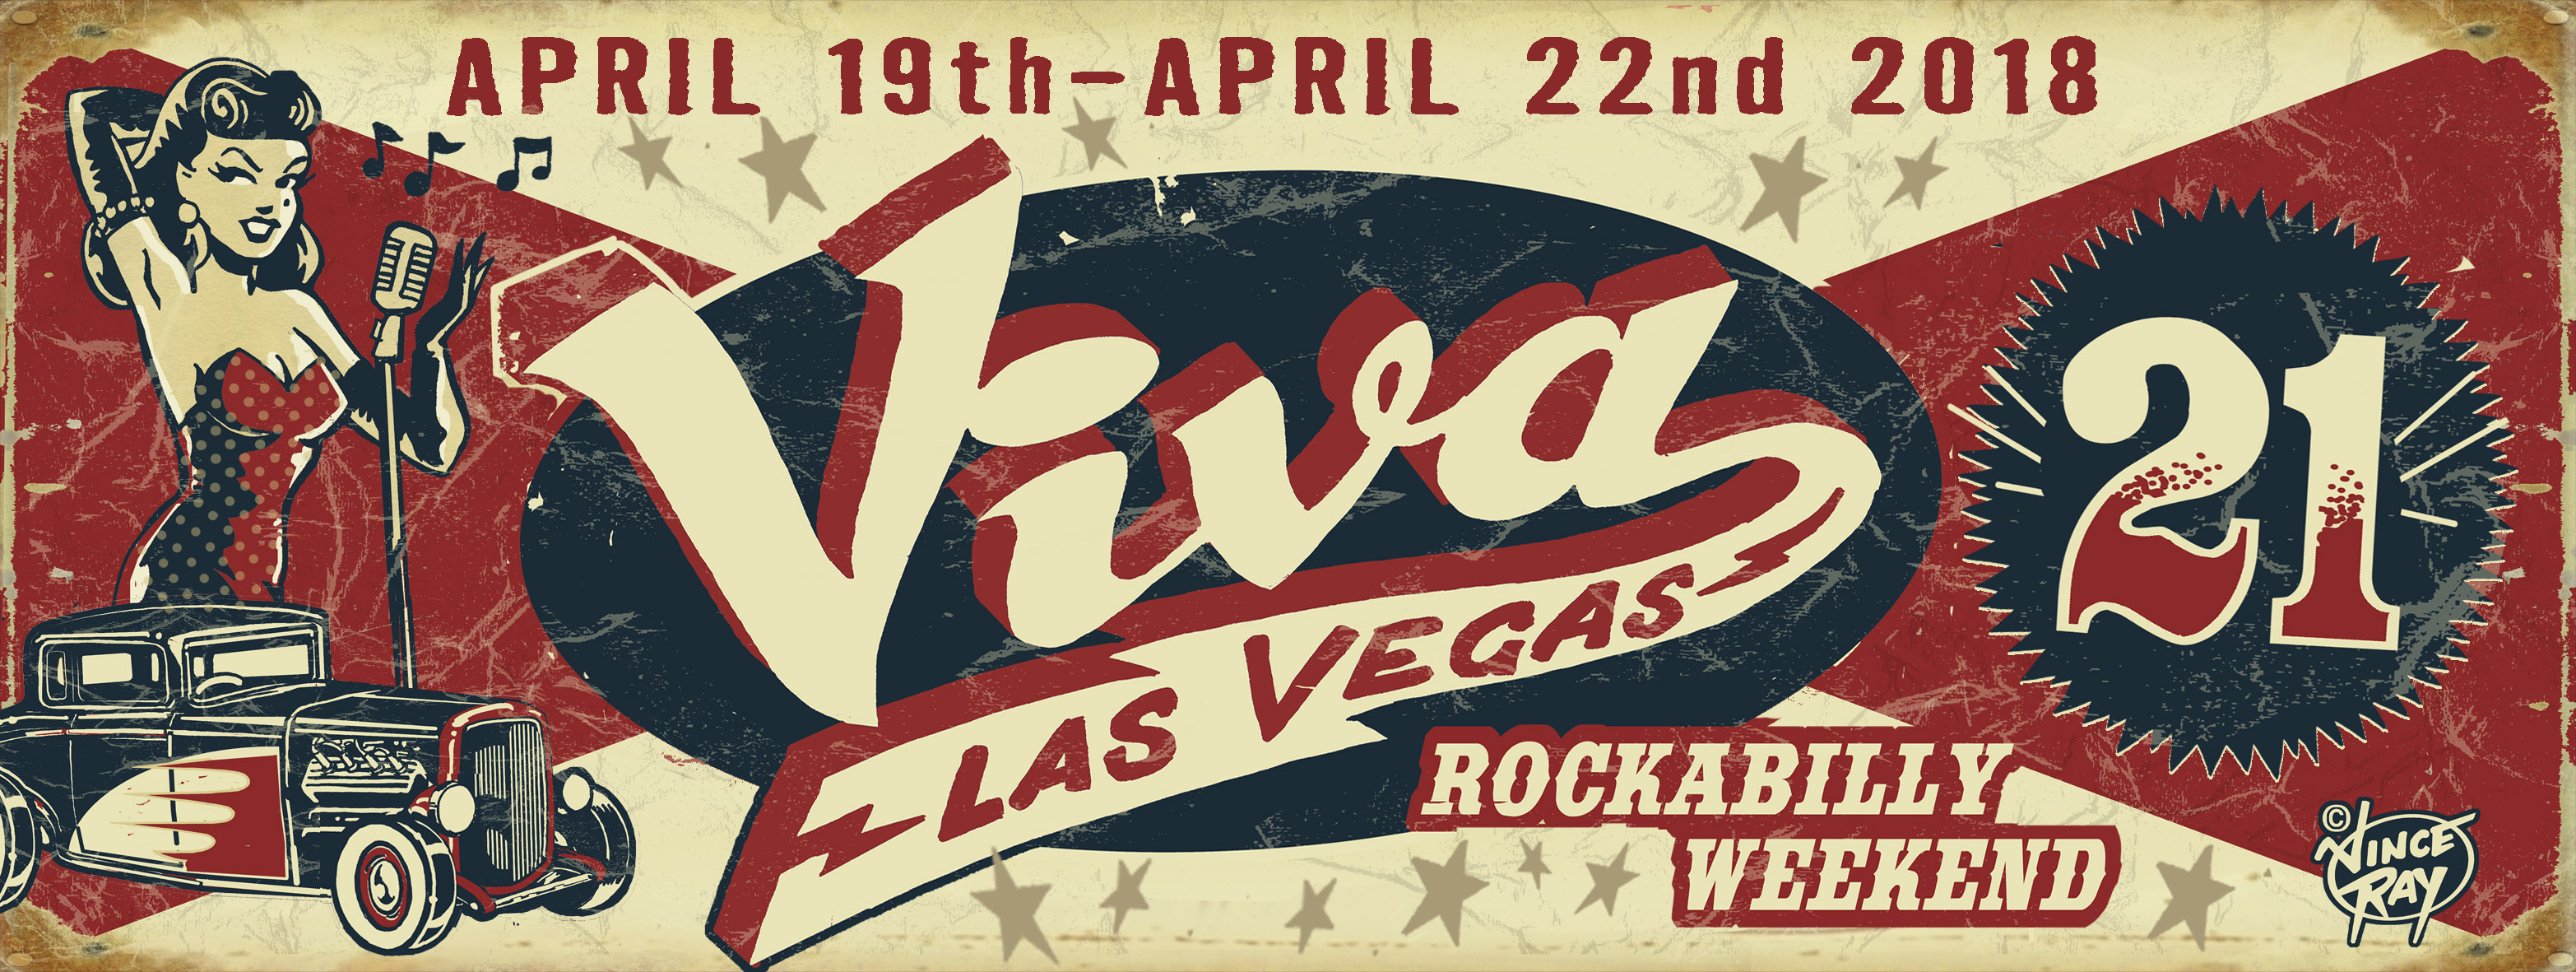 Viva Las Vegas Car Show Tickets